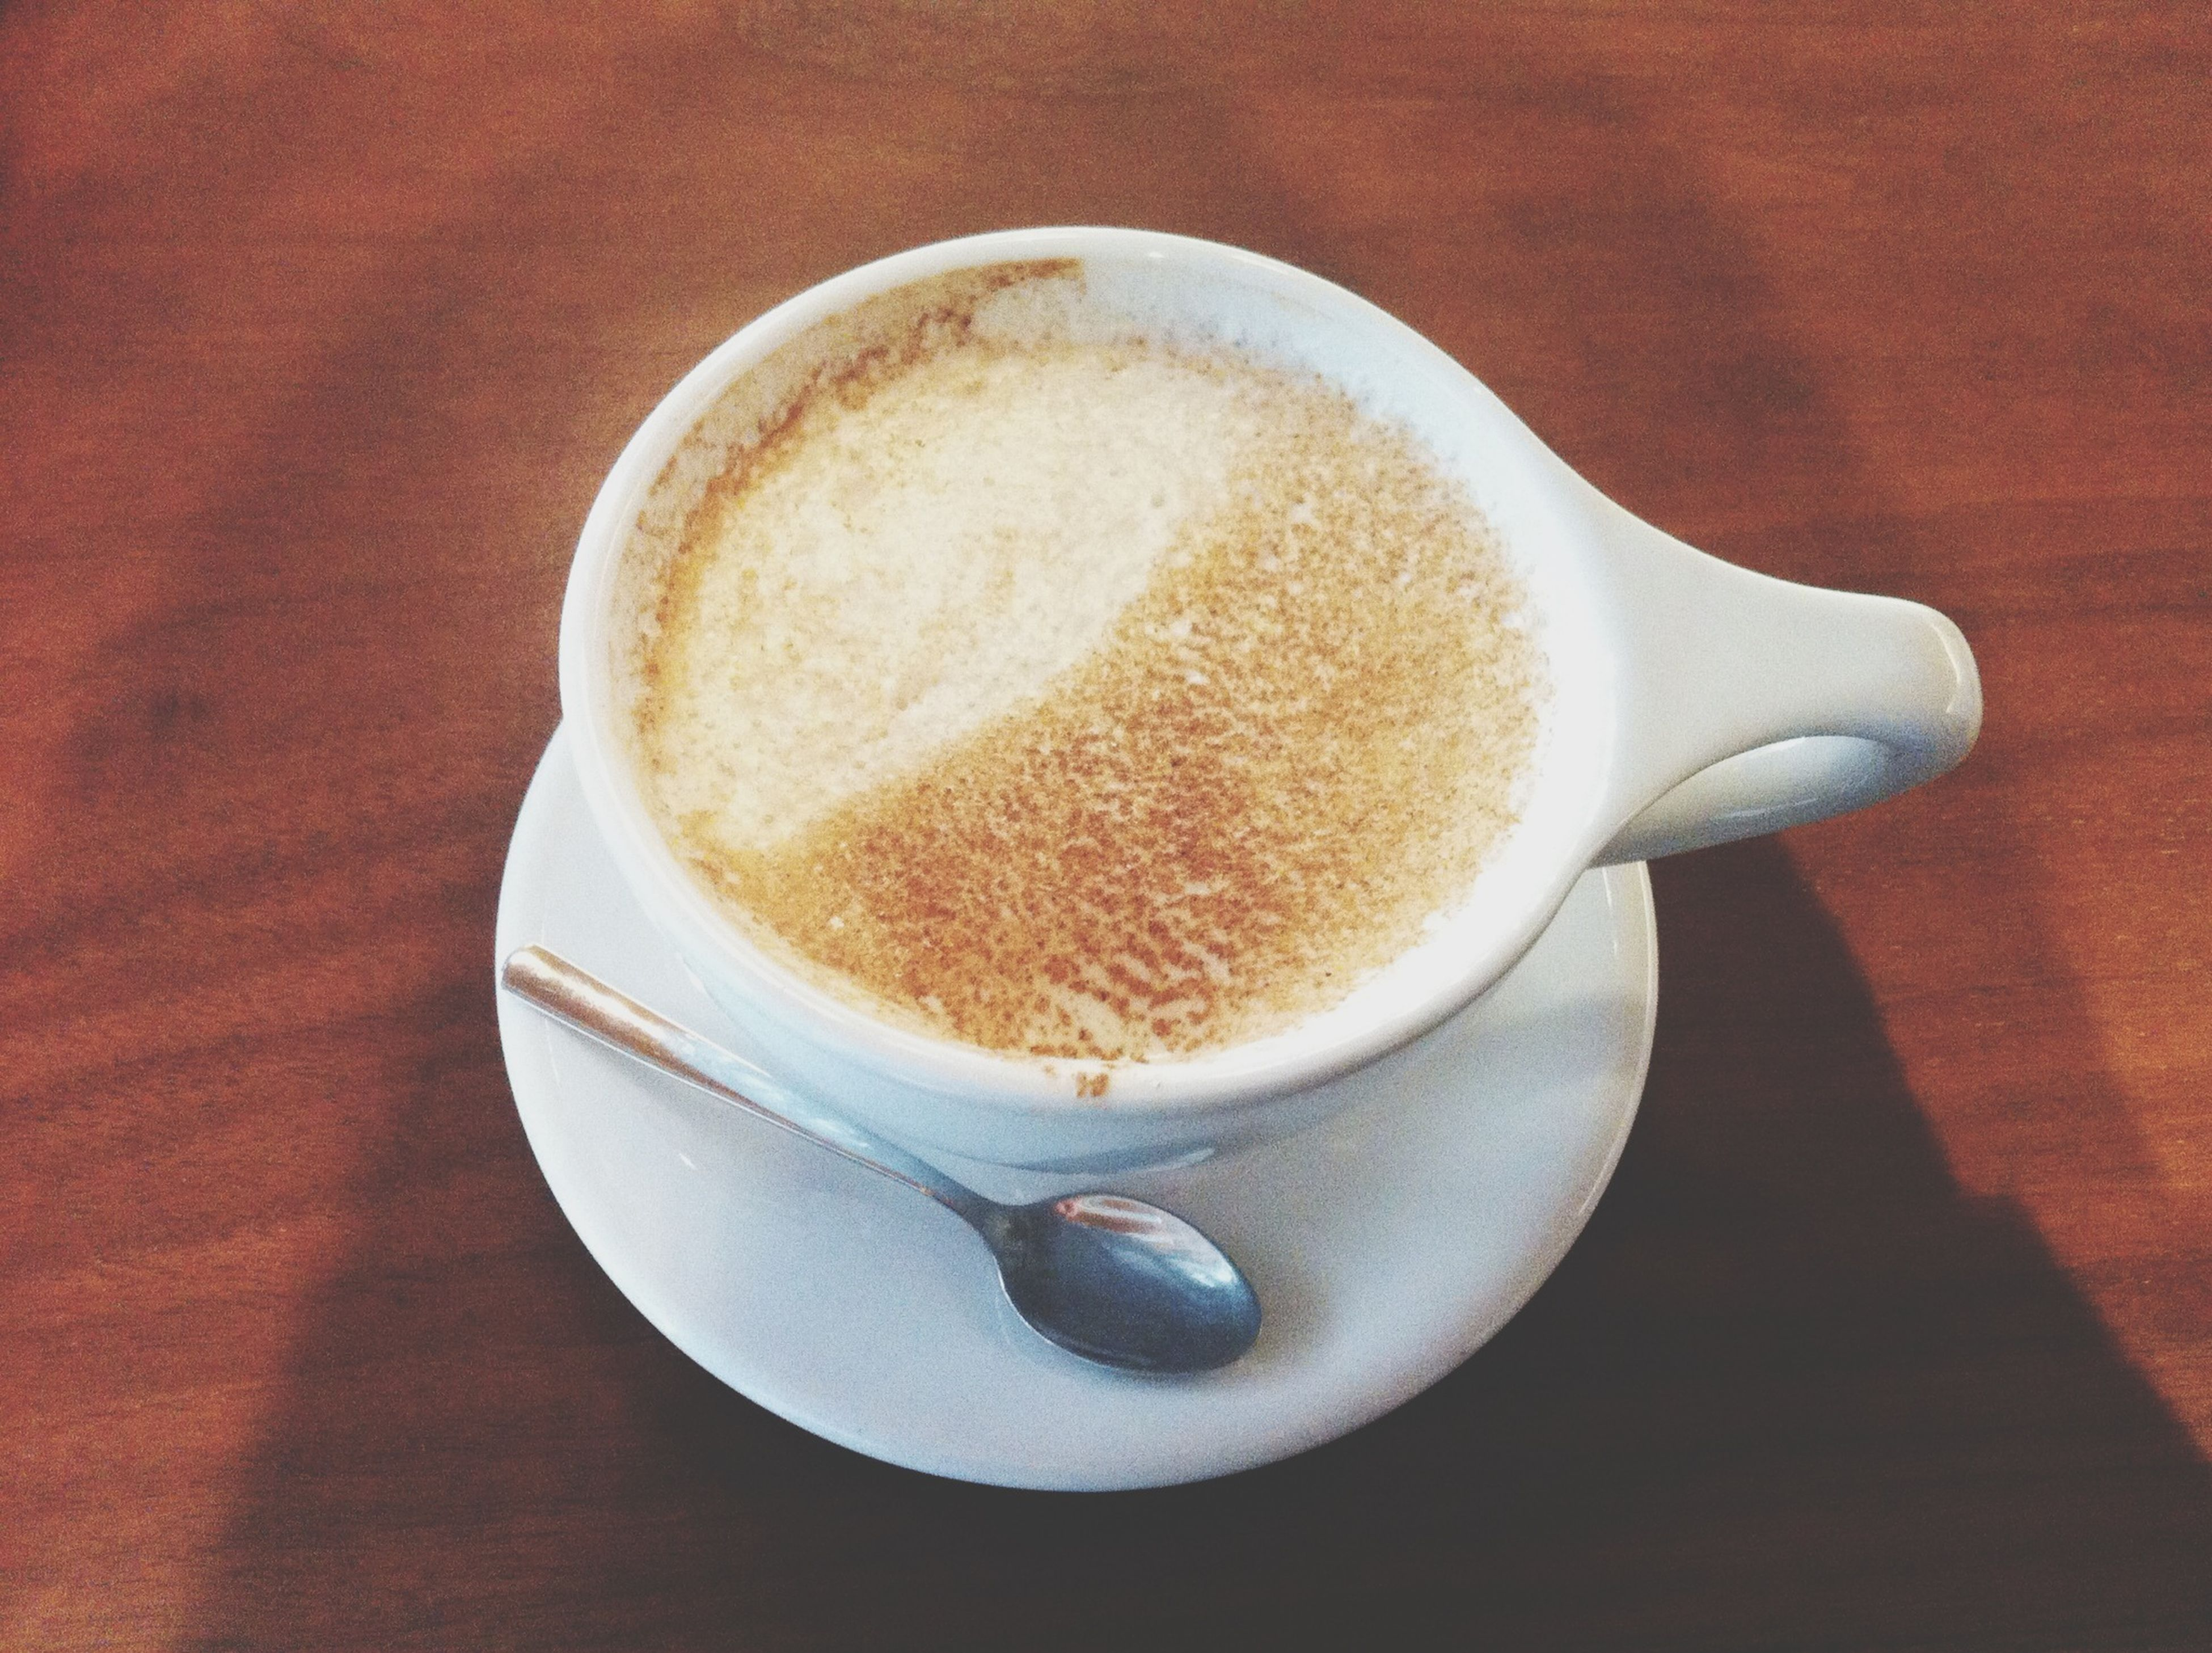 food and drink, drink, refreshment, coffee cup, indoors, coffee - drink, table, saucer, still life, freshness, frothy drink, coffee, close-up, high angle view, cappuccino, spoon, cup, froth art, beverage, no people